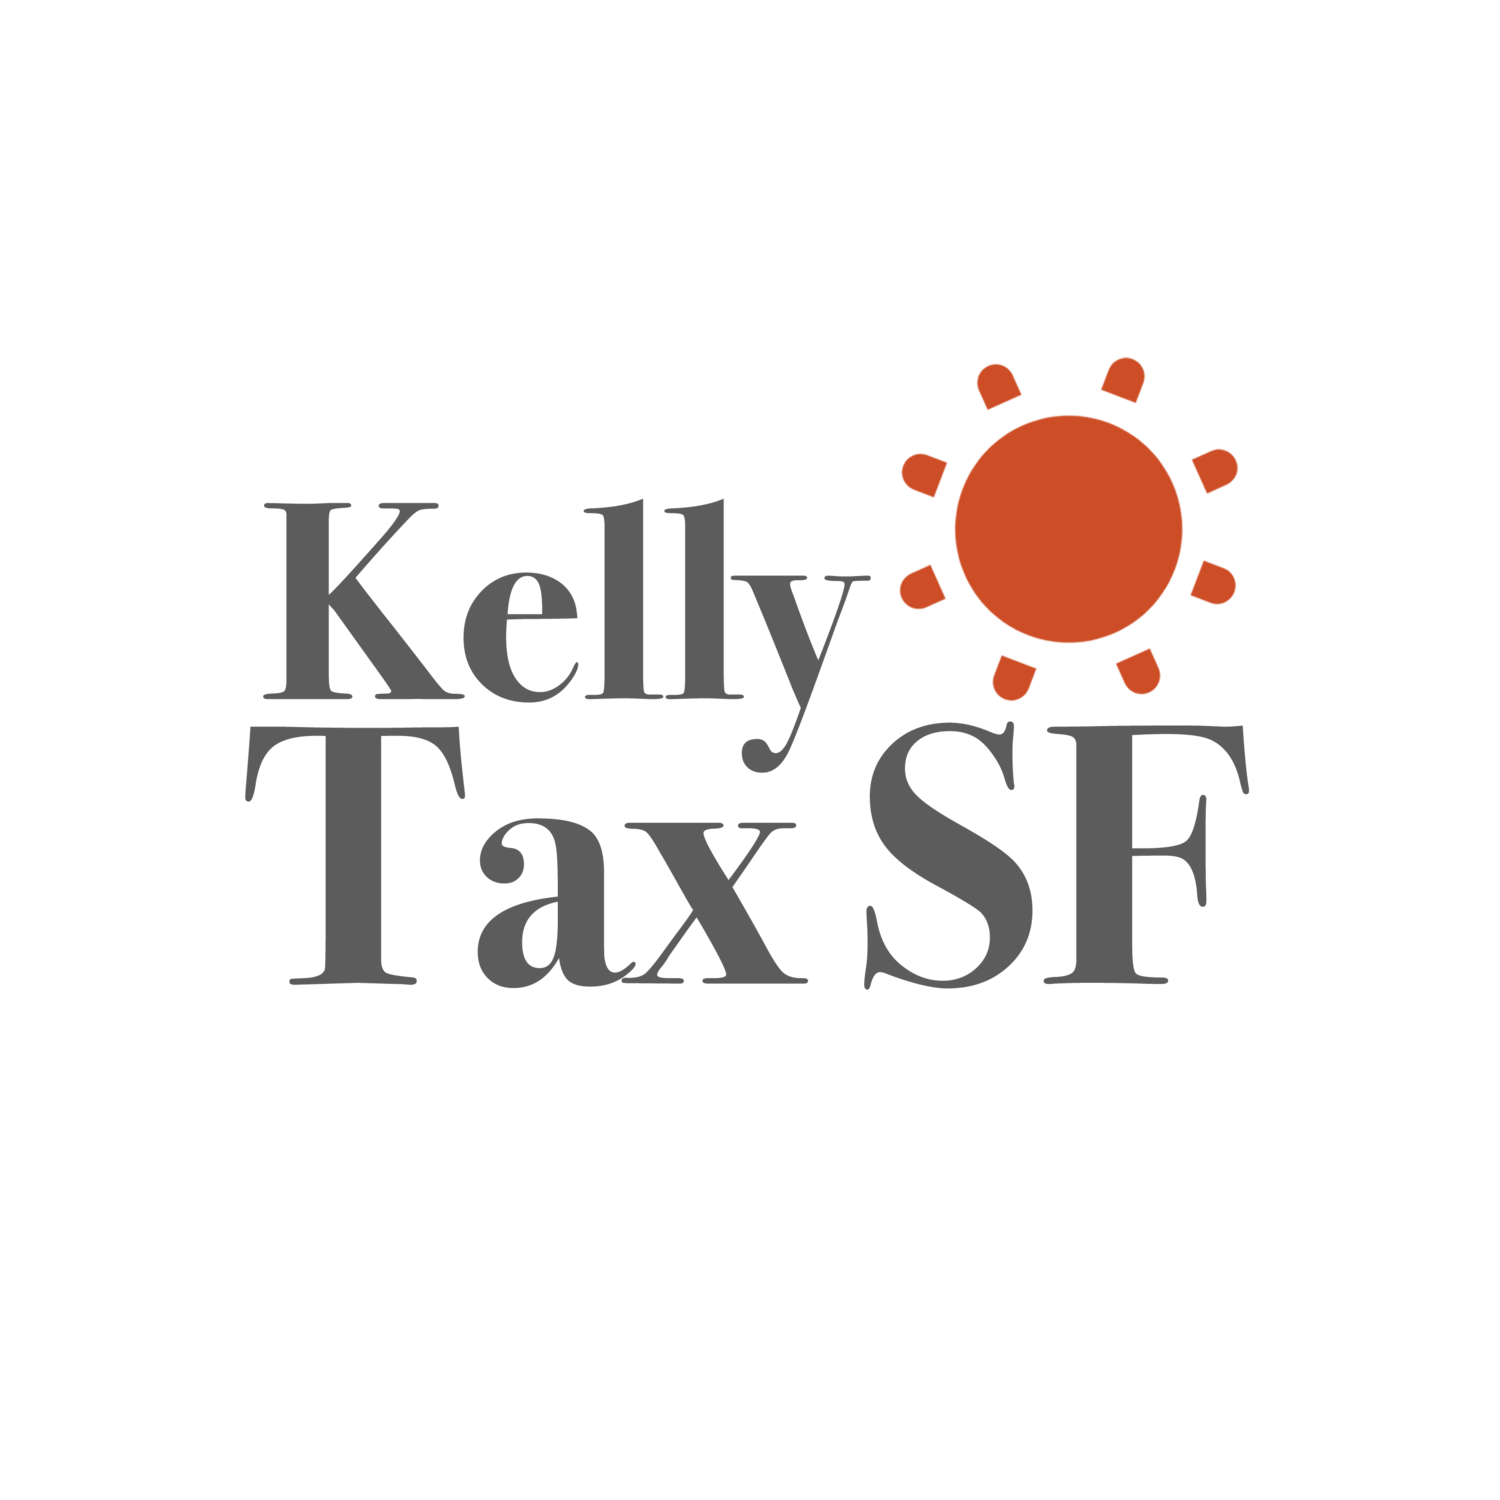 Kelly Tax SF